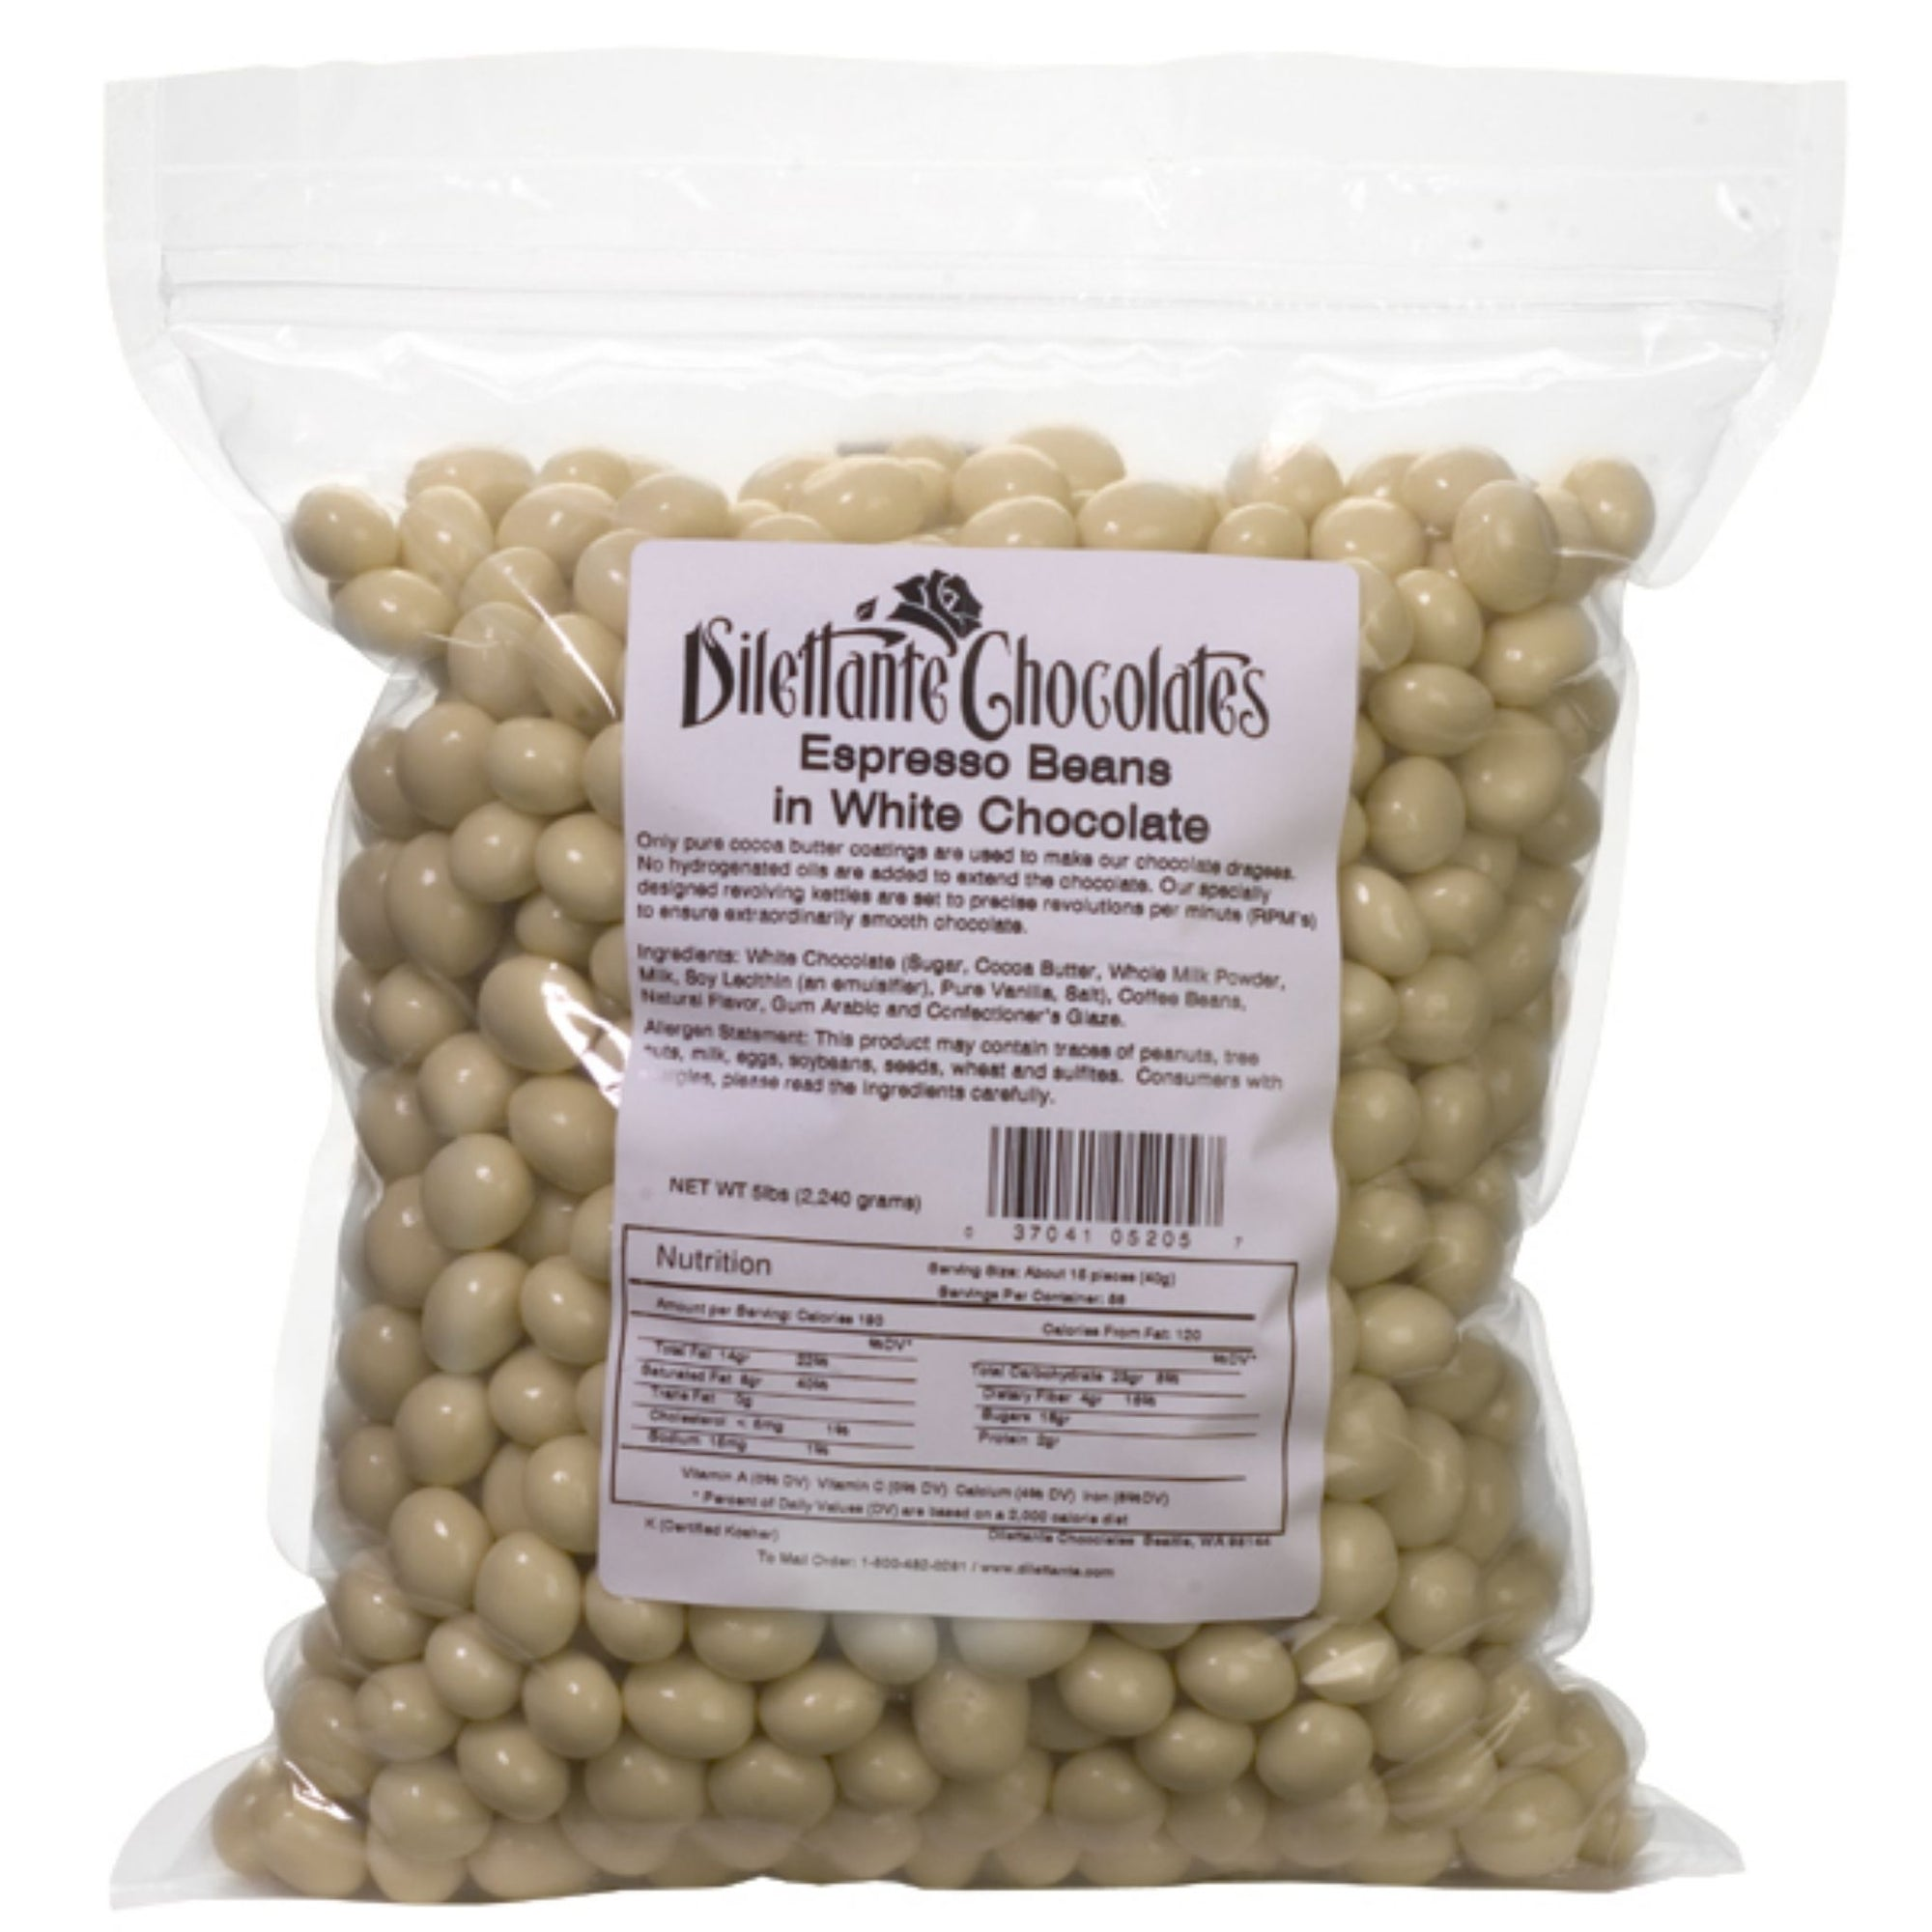 Dilettante Chocolates Espresso Beans in White Chocolate 5-Pound Bulk Bag for Sharing